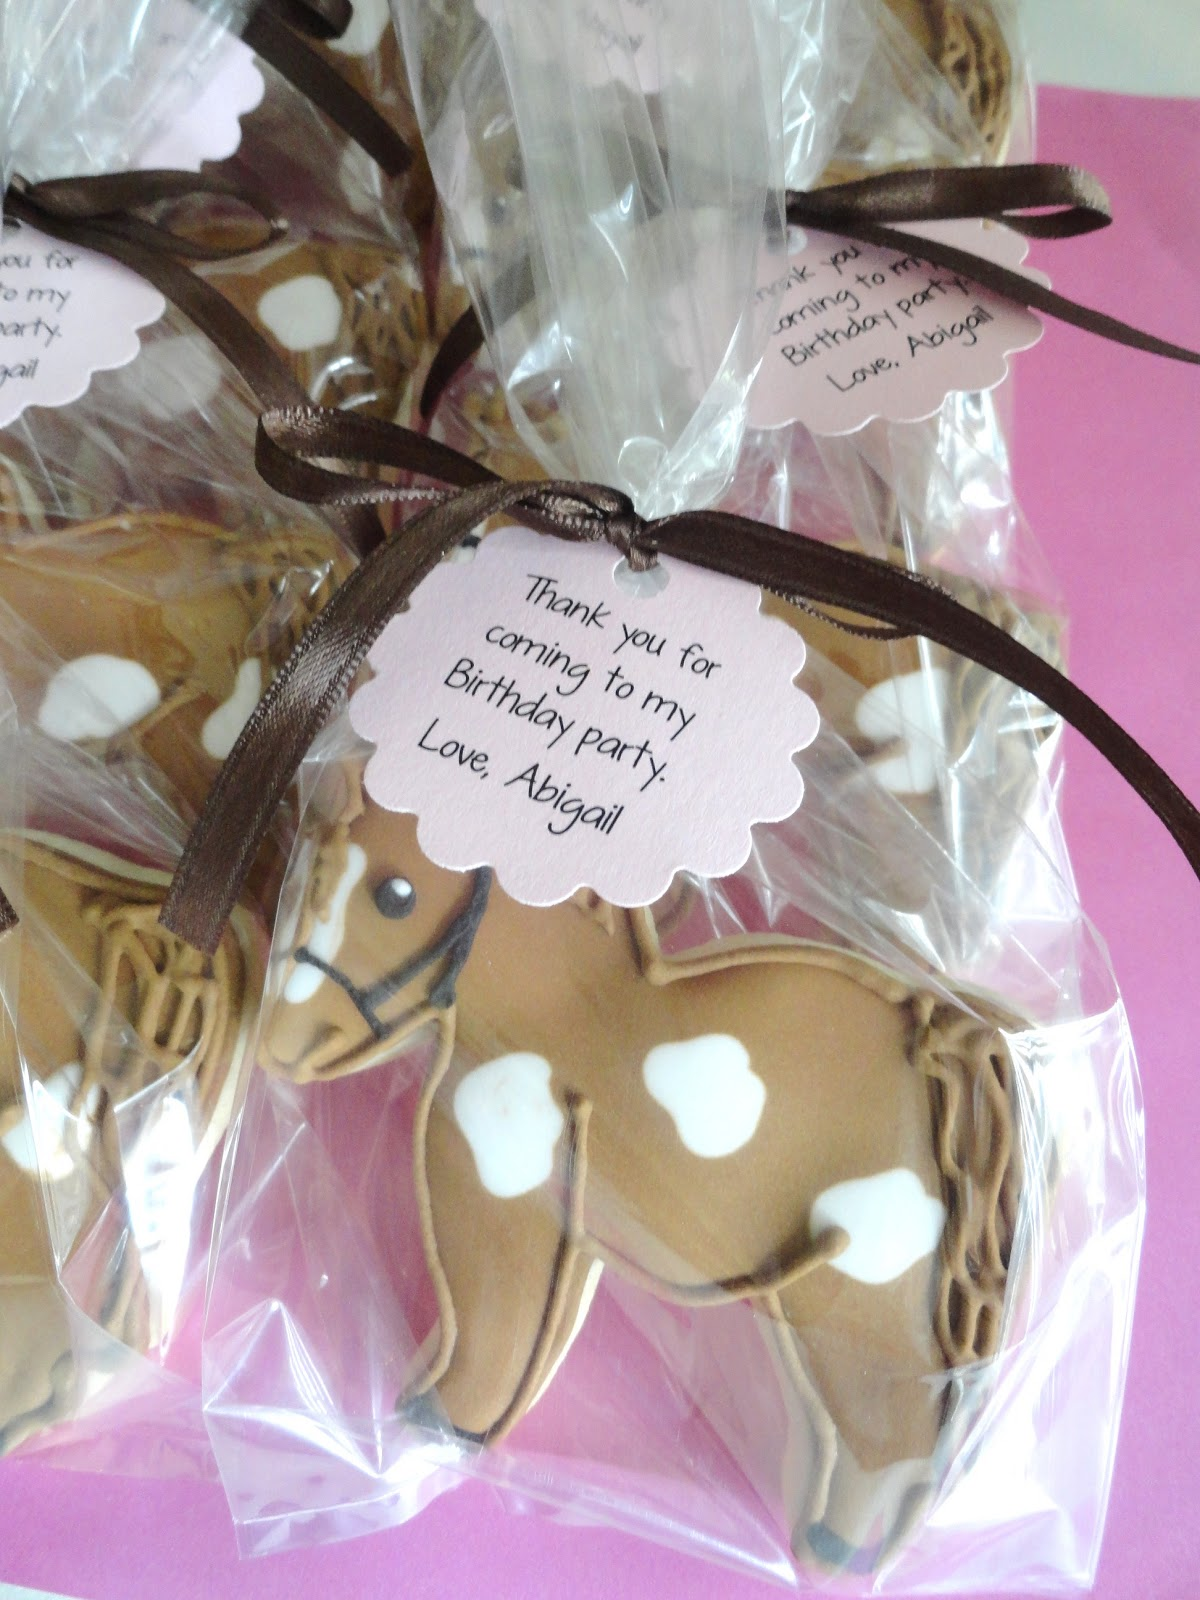 My Pink Little Cake Horse Cookie Favors For A Farm Theme Birthday Party